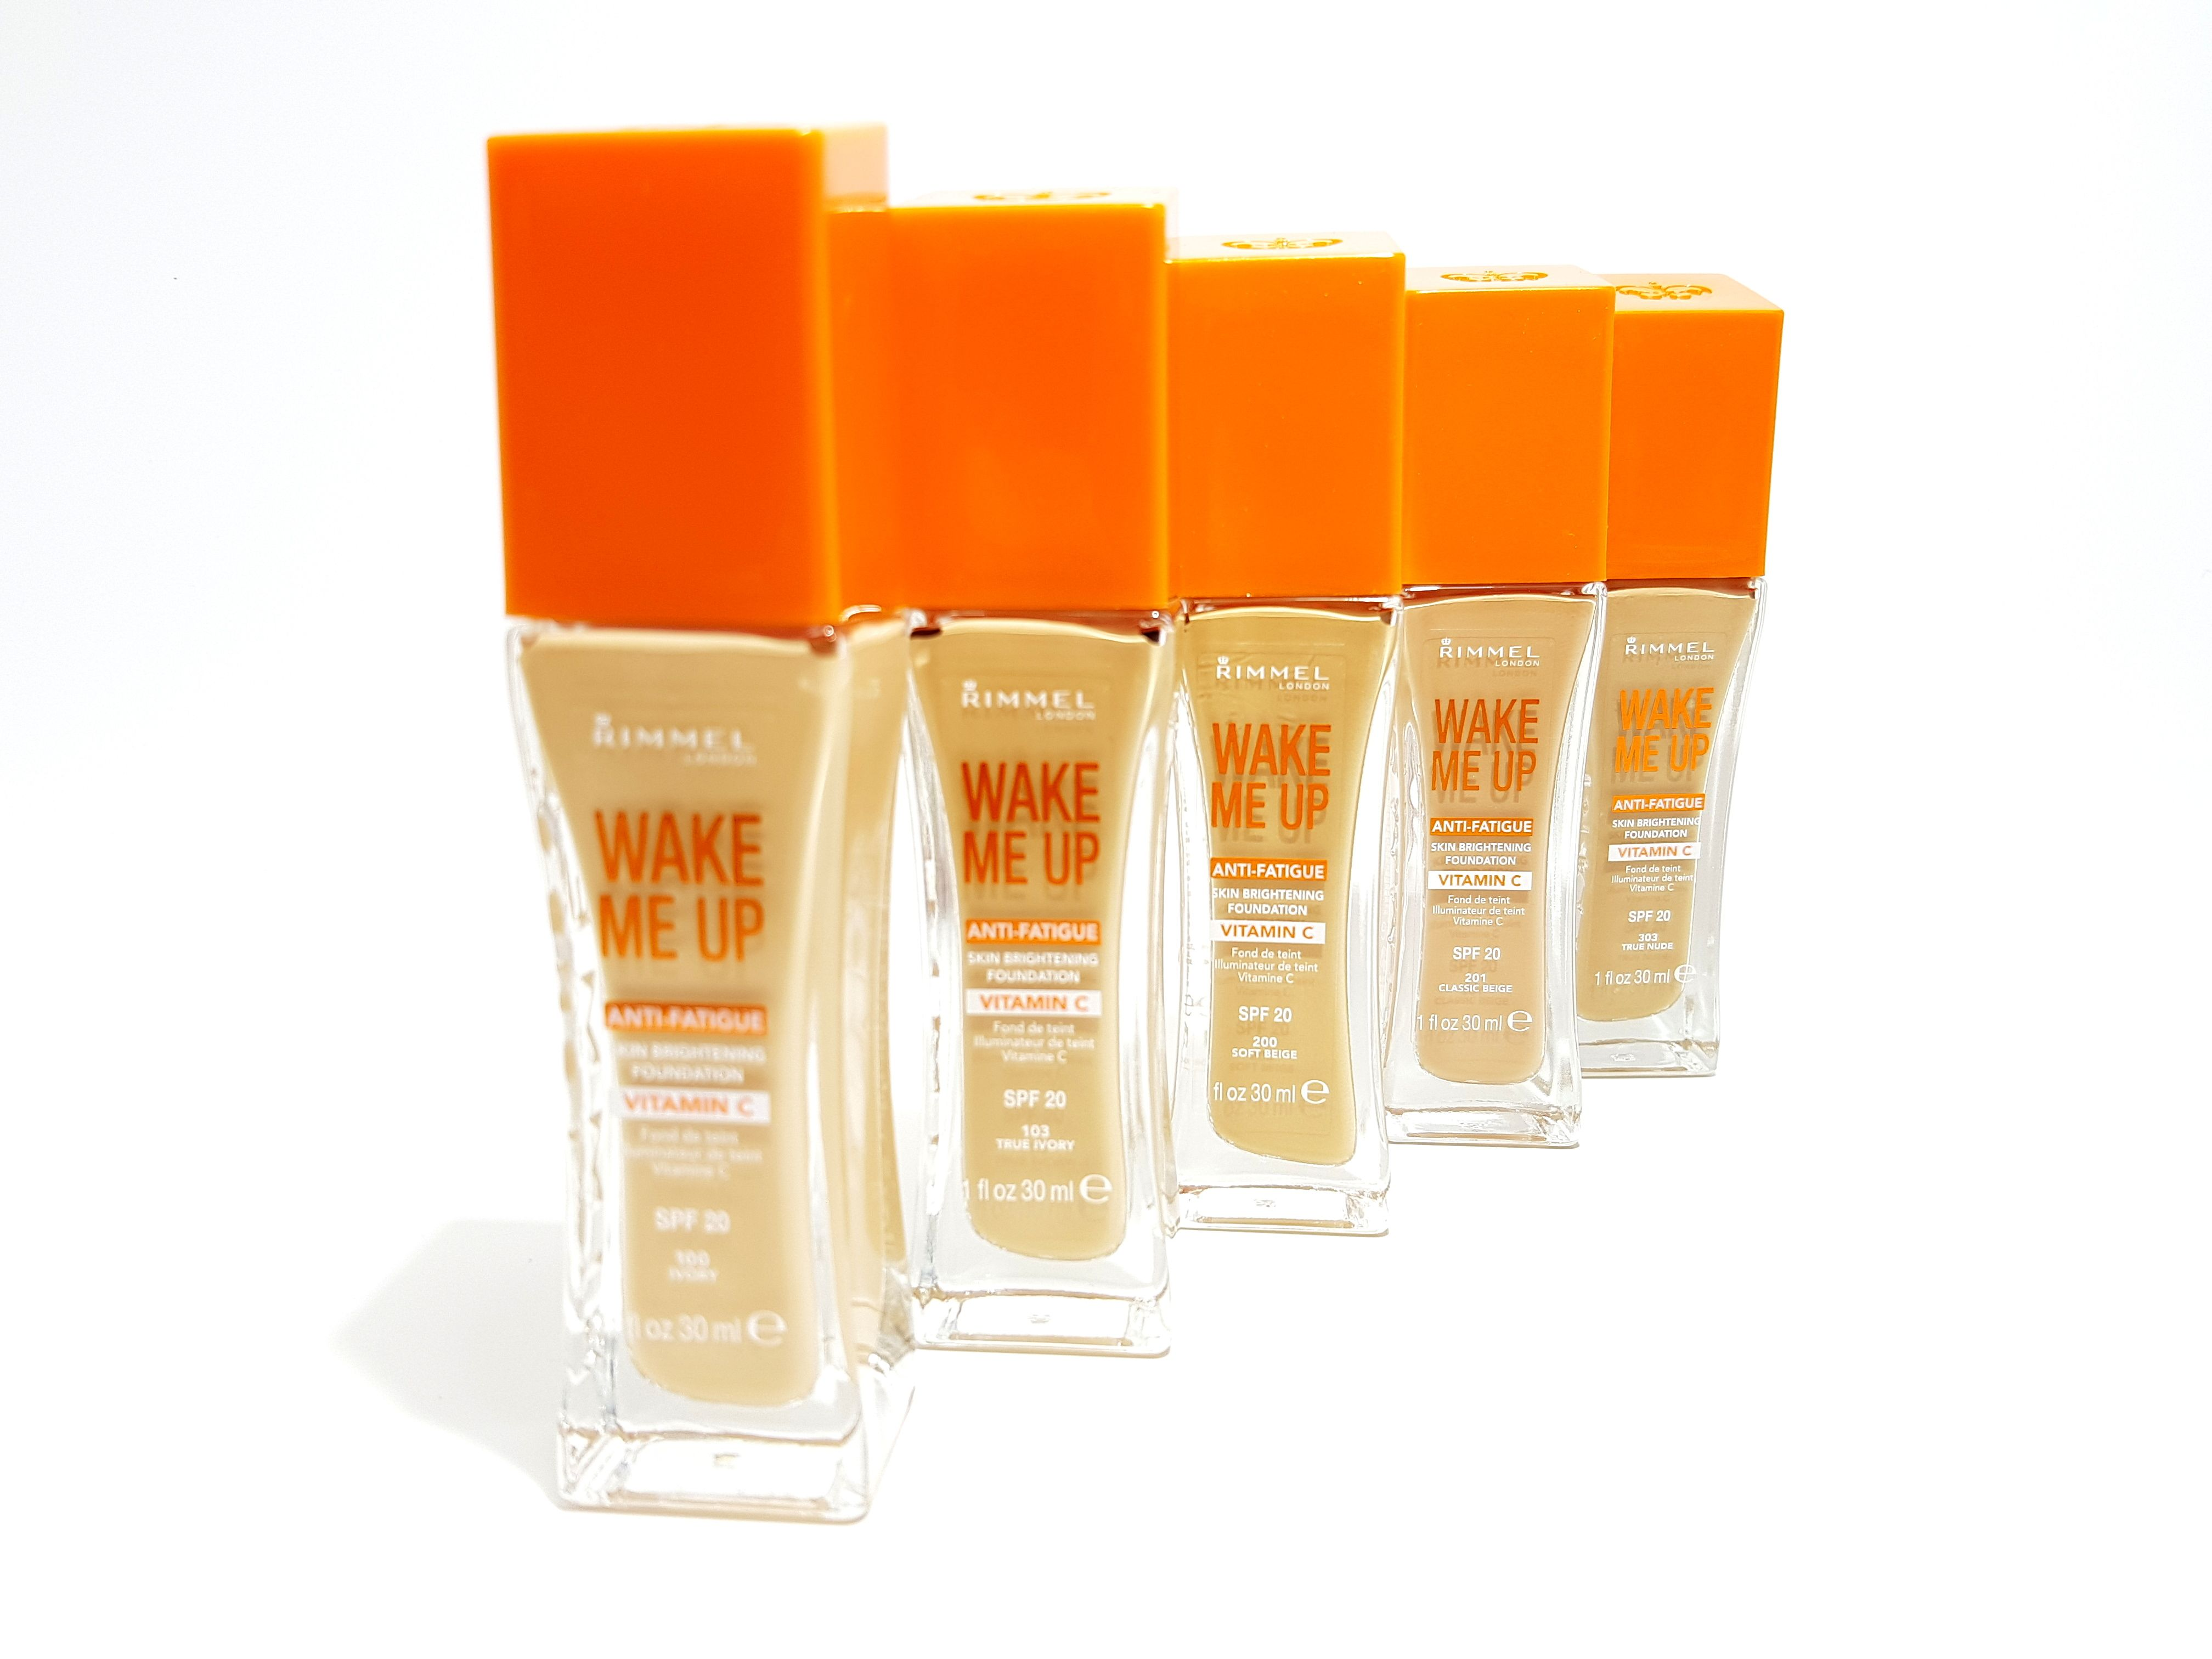 15 x Rimmel Wake Me Up Anti-Fatigue Foundation - ASSORTED